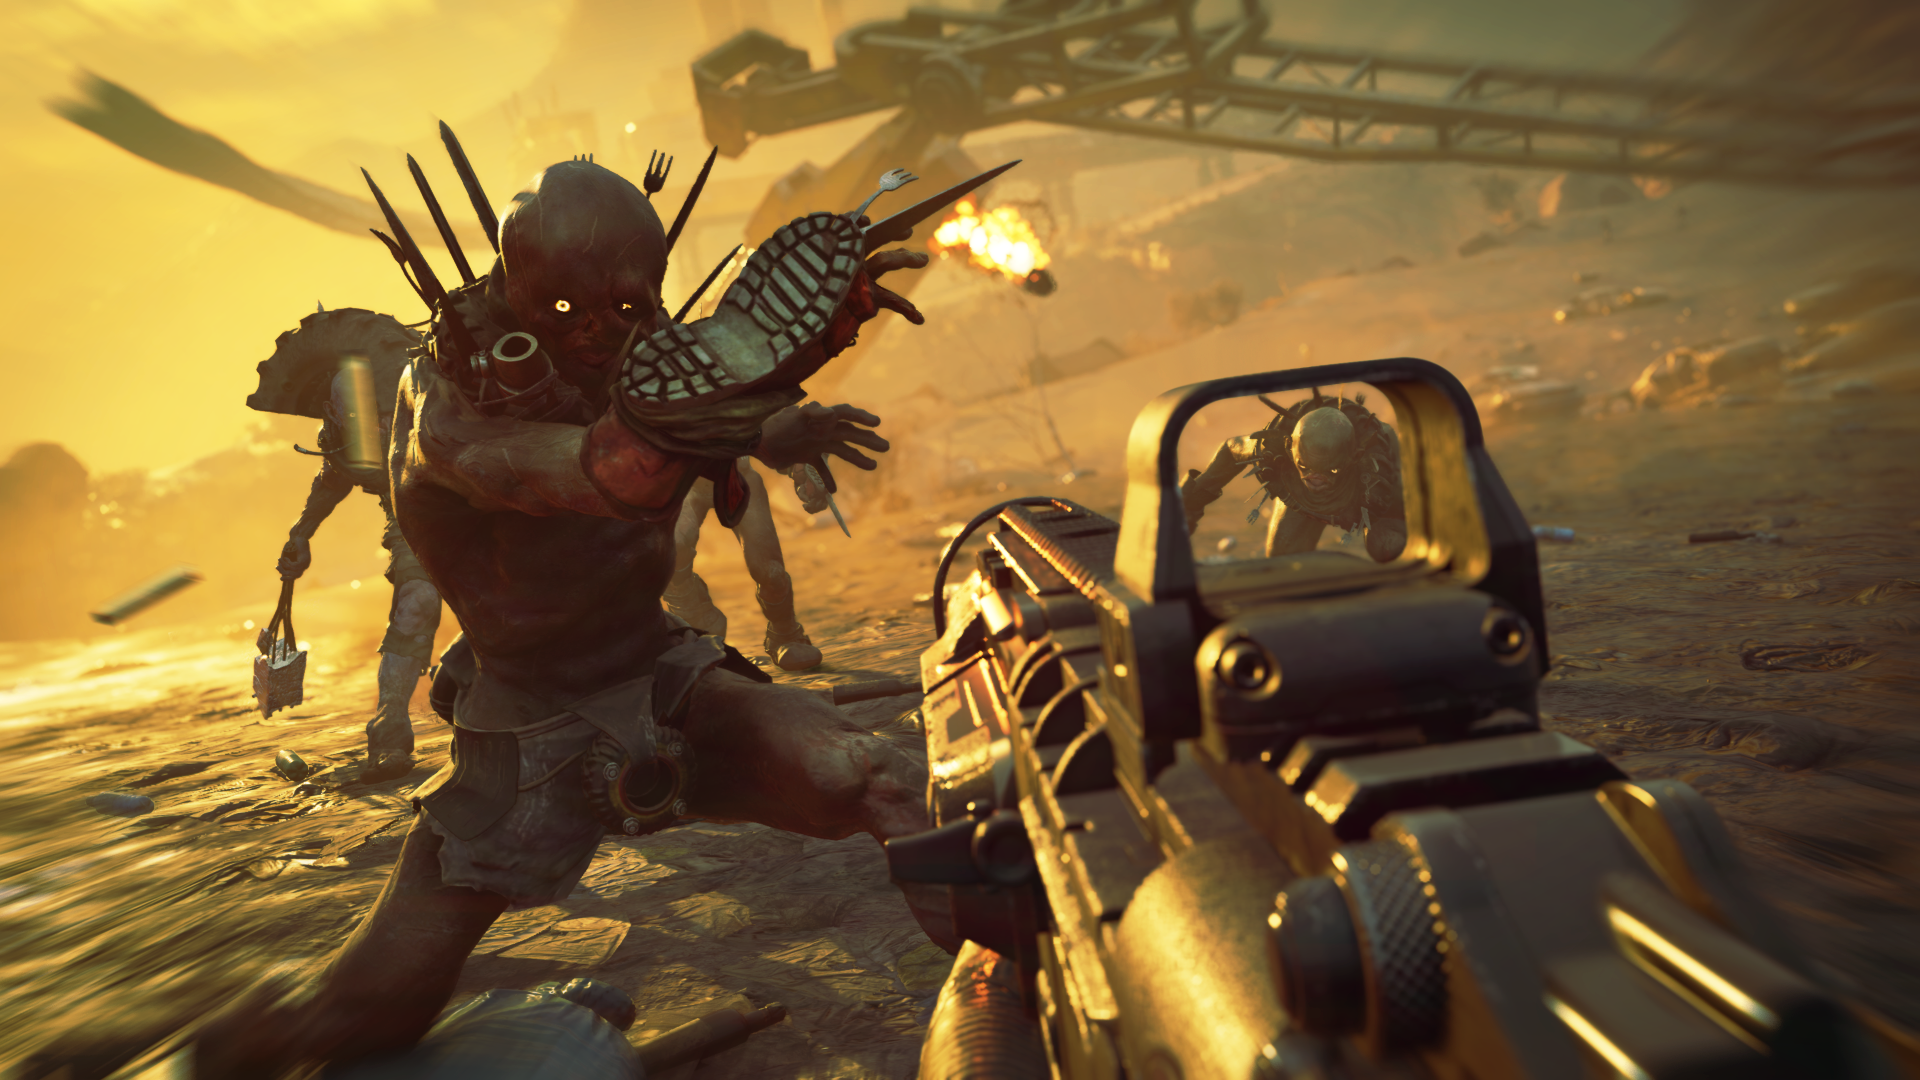 Rage 2 release date